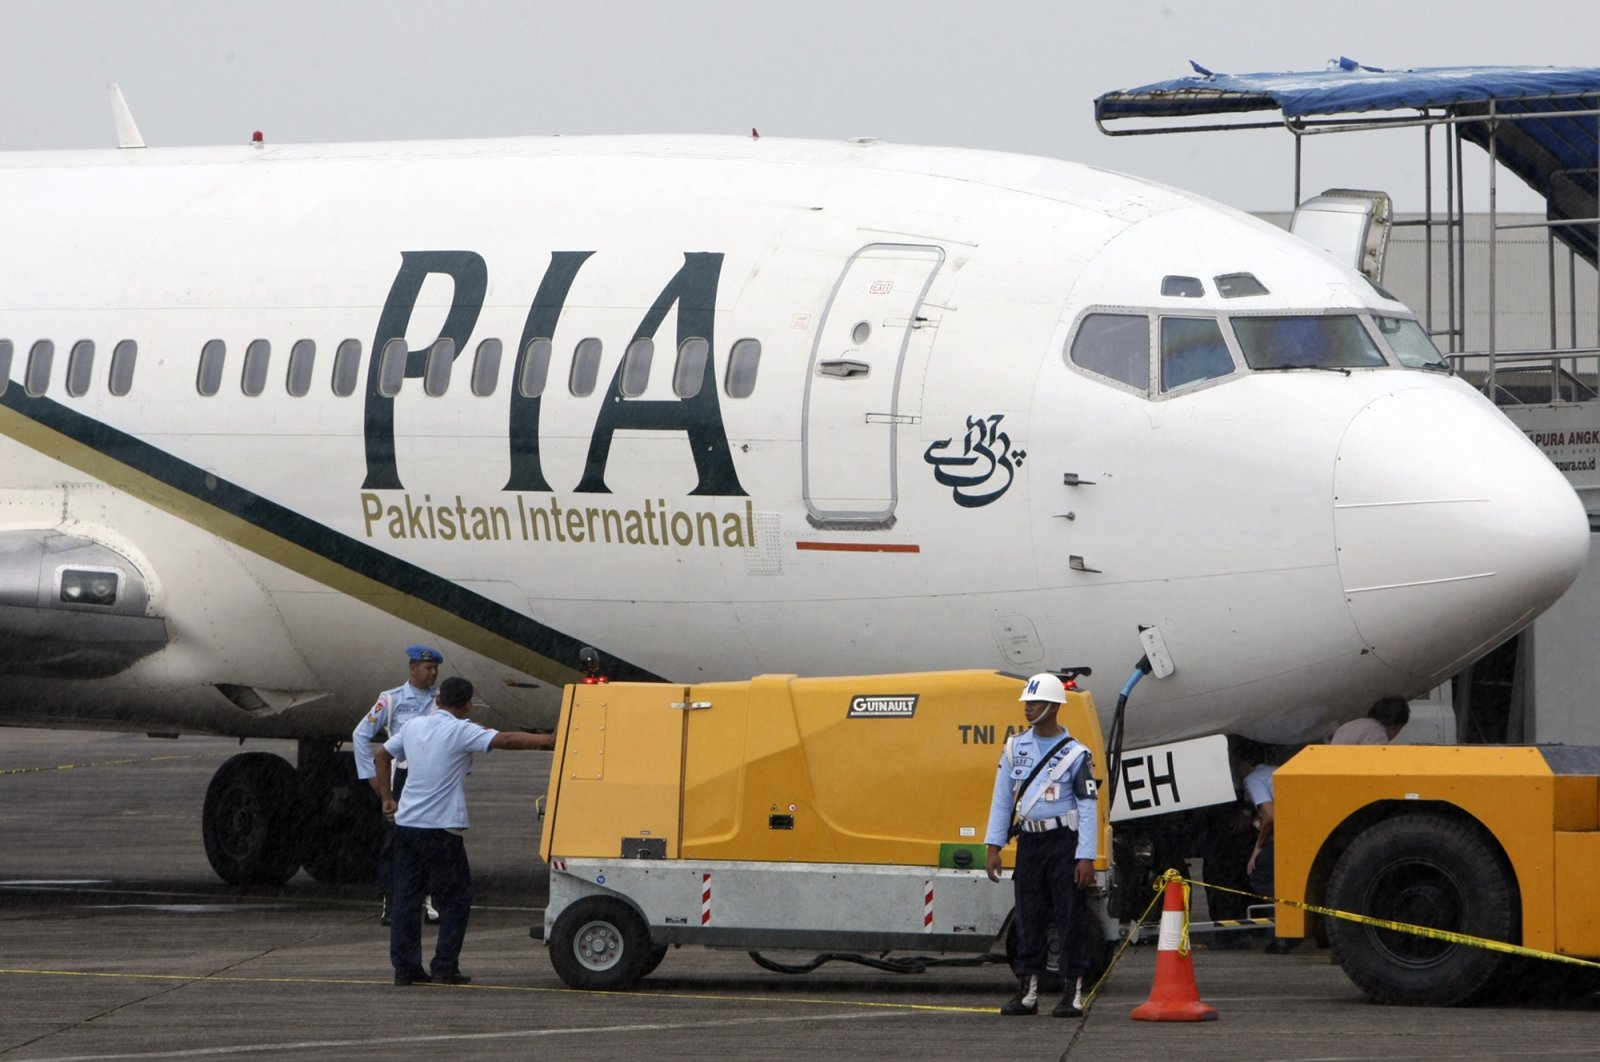 A Pakistan International Airlines passenger jet is parked on the tarmac at a military base in Makassar, Indonesia, March 7, 2011. (AP File Photo)